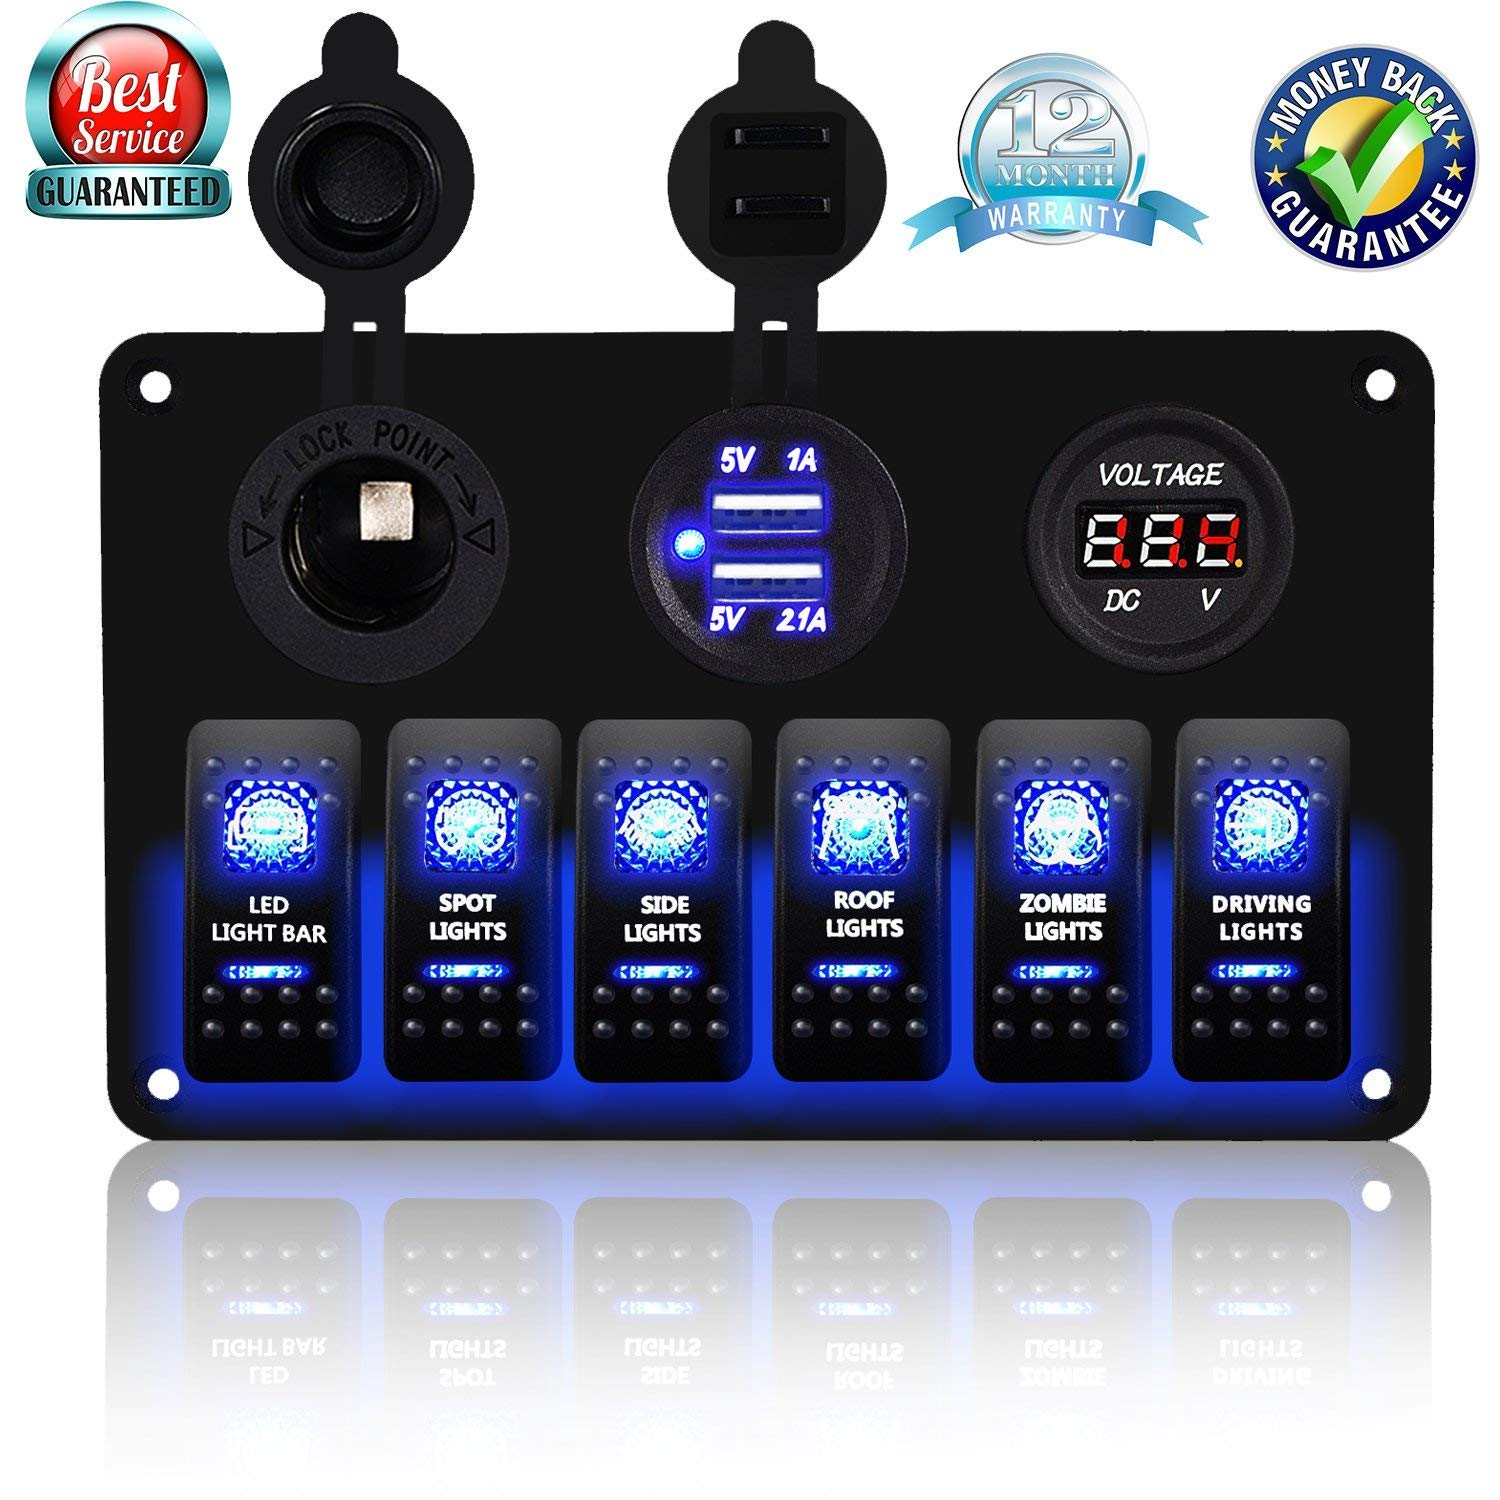 DCFlat 4 Gang / 6 Gang / 8 Gang Circuit LED Car Marine Boat Rocker Switch Panel Dual USB Waterproof Power Socket Breaker Voltmeter Overload Protection (6 Gang Aluminum Panel) by DCFlat